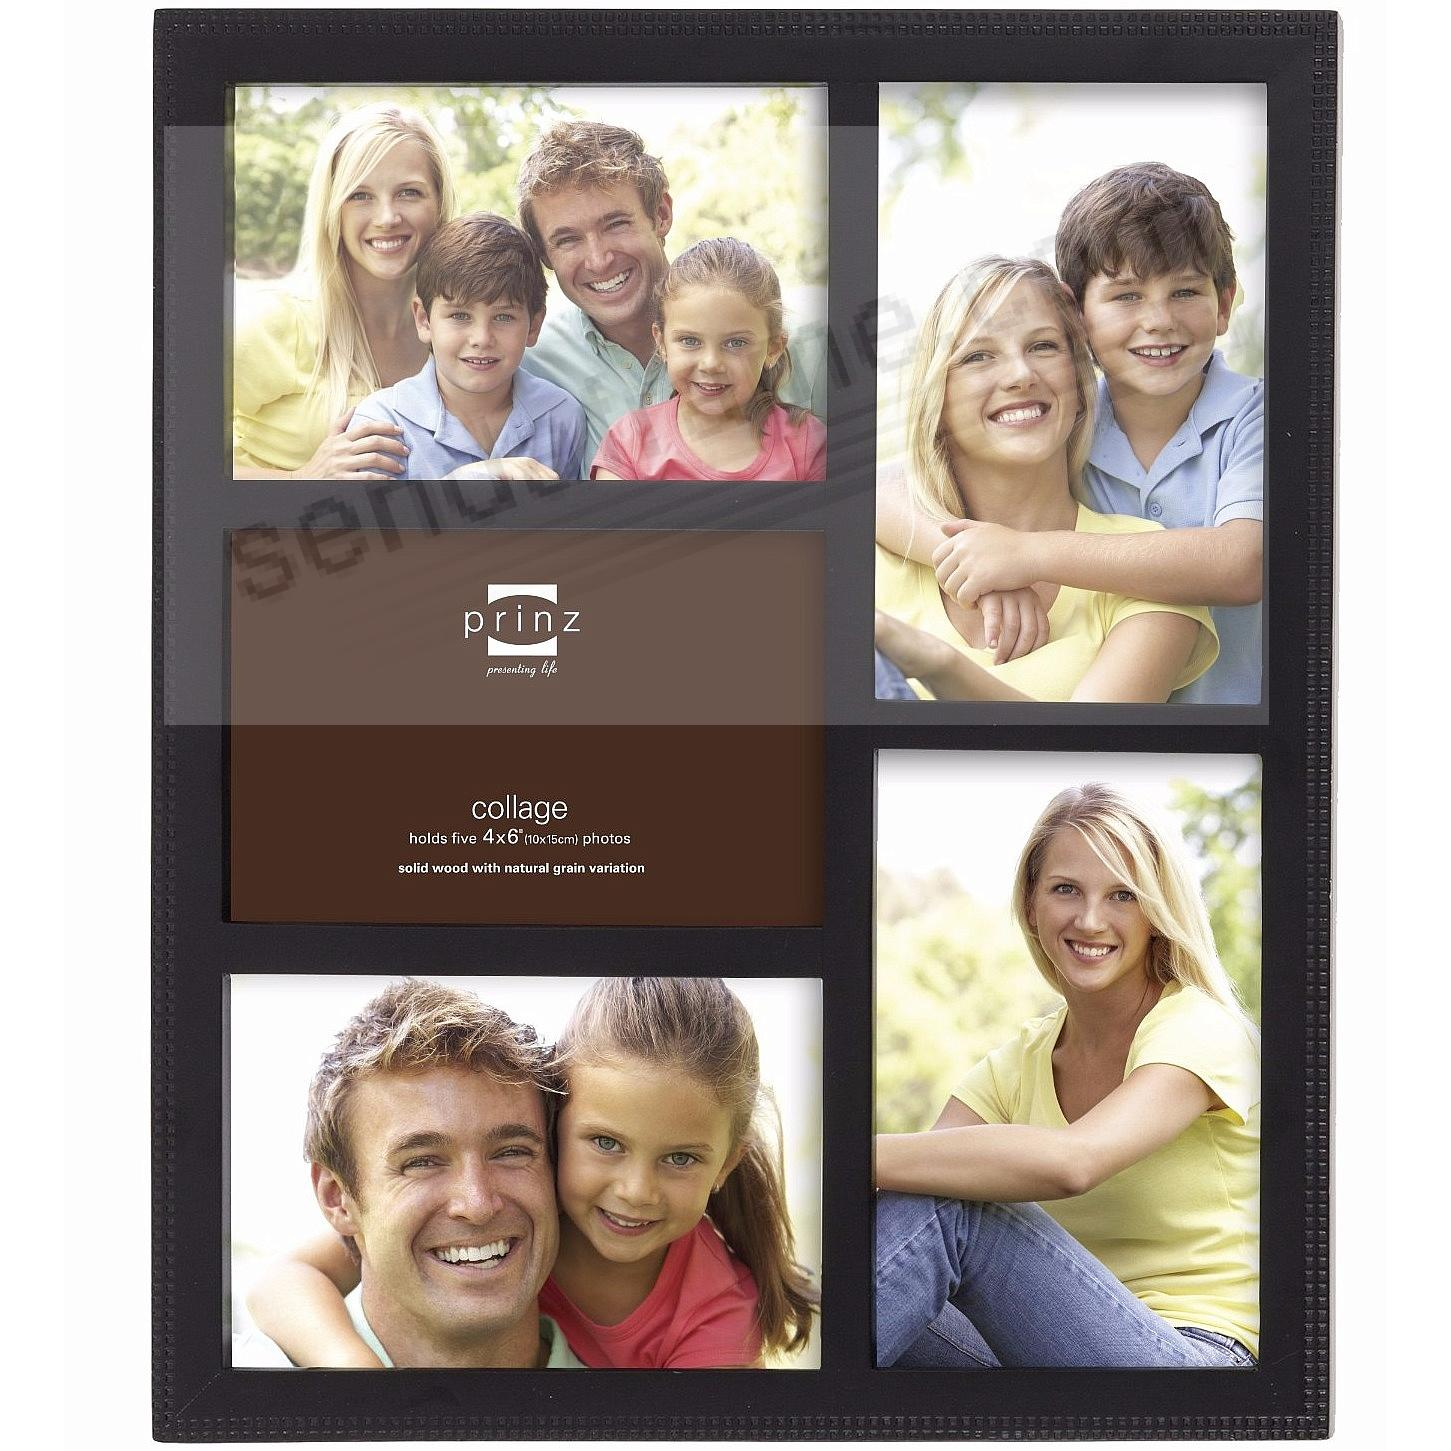 Picture frames photo albums personalized and engraved digital sonoma black patterned five opening 4x6 frame by prinzreg jeuxipadfo Images